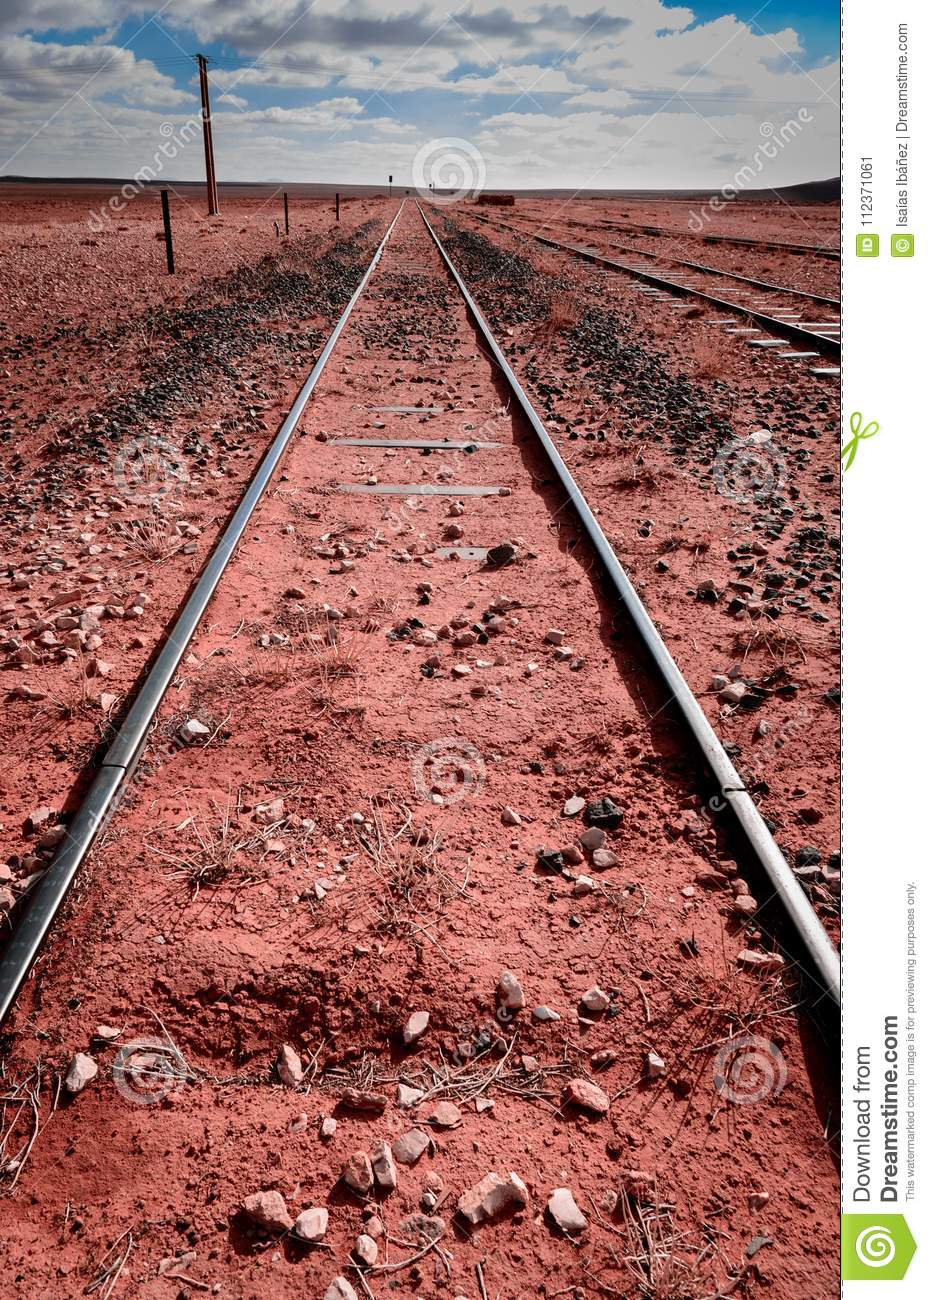 Converging Railroad Tracks stock image. Image of parallel